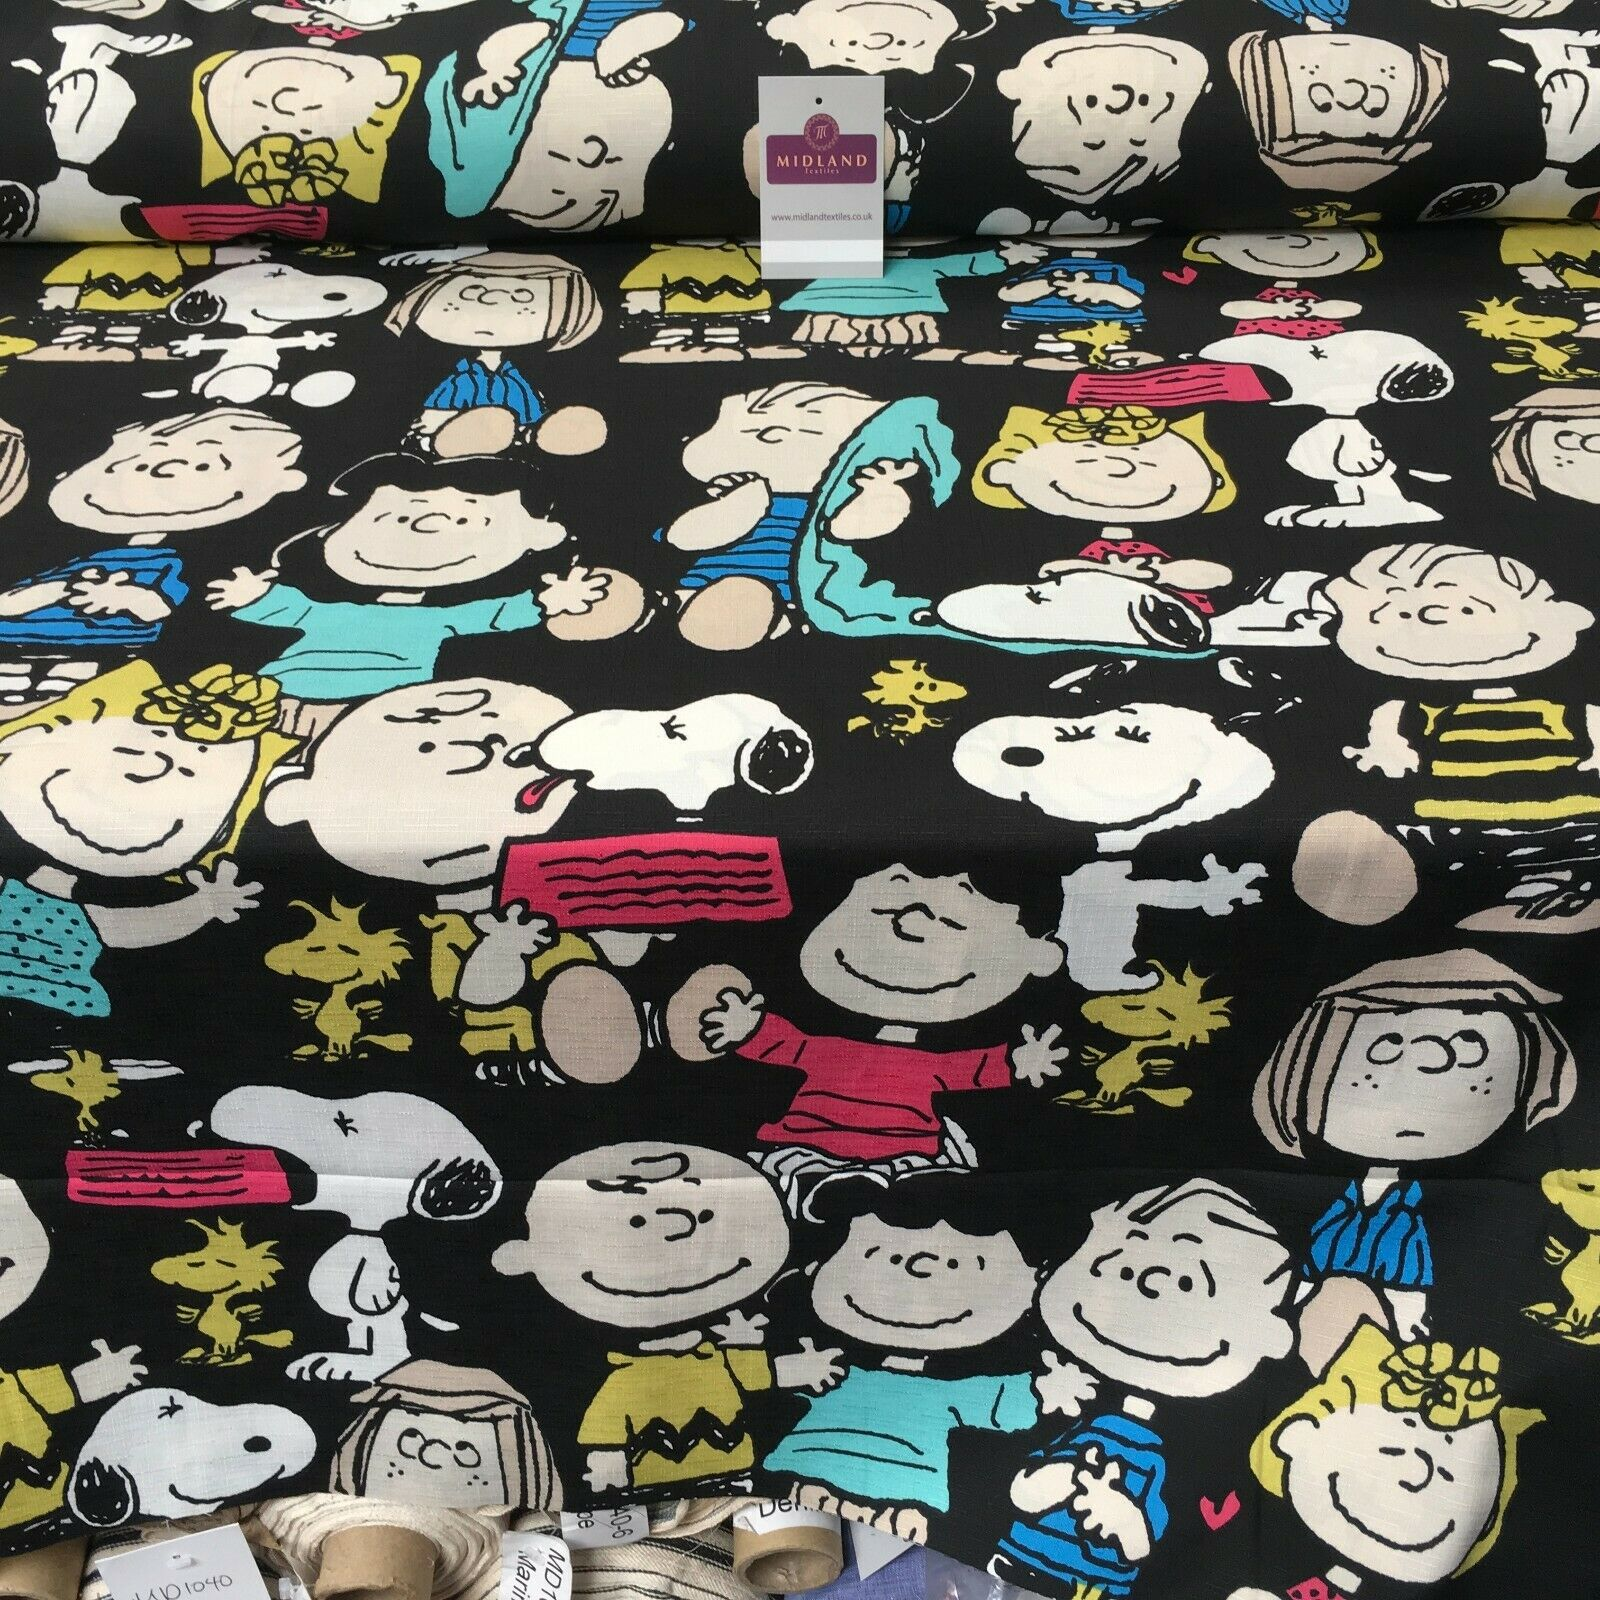 Charlie brown & Snoopy Linen Effect Georgette Crepe Dress Fabric 147 cm MK1184-9